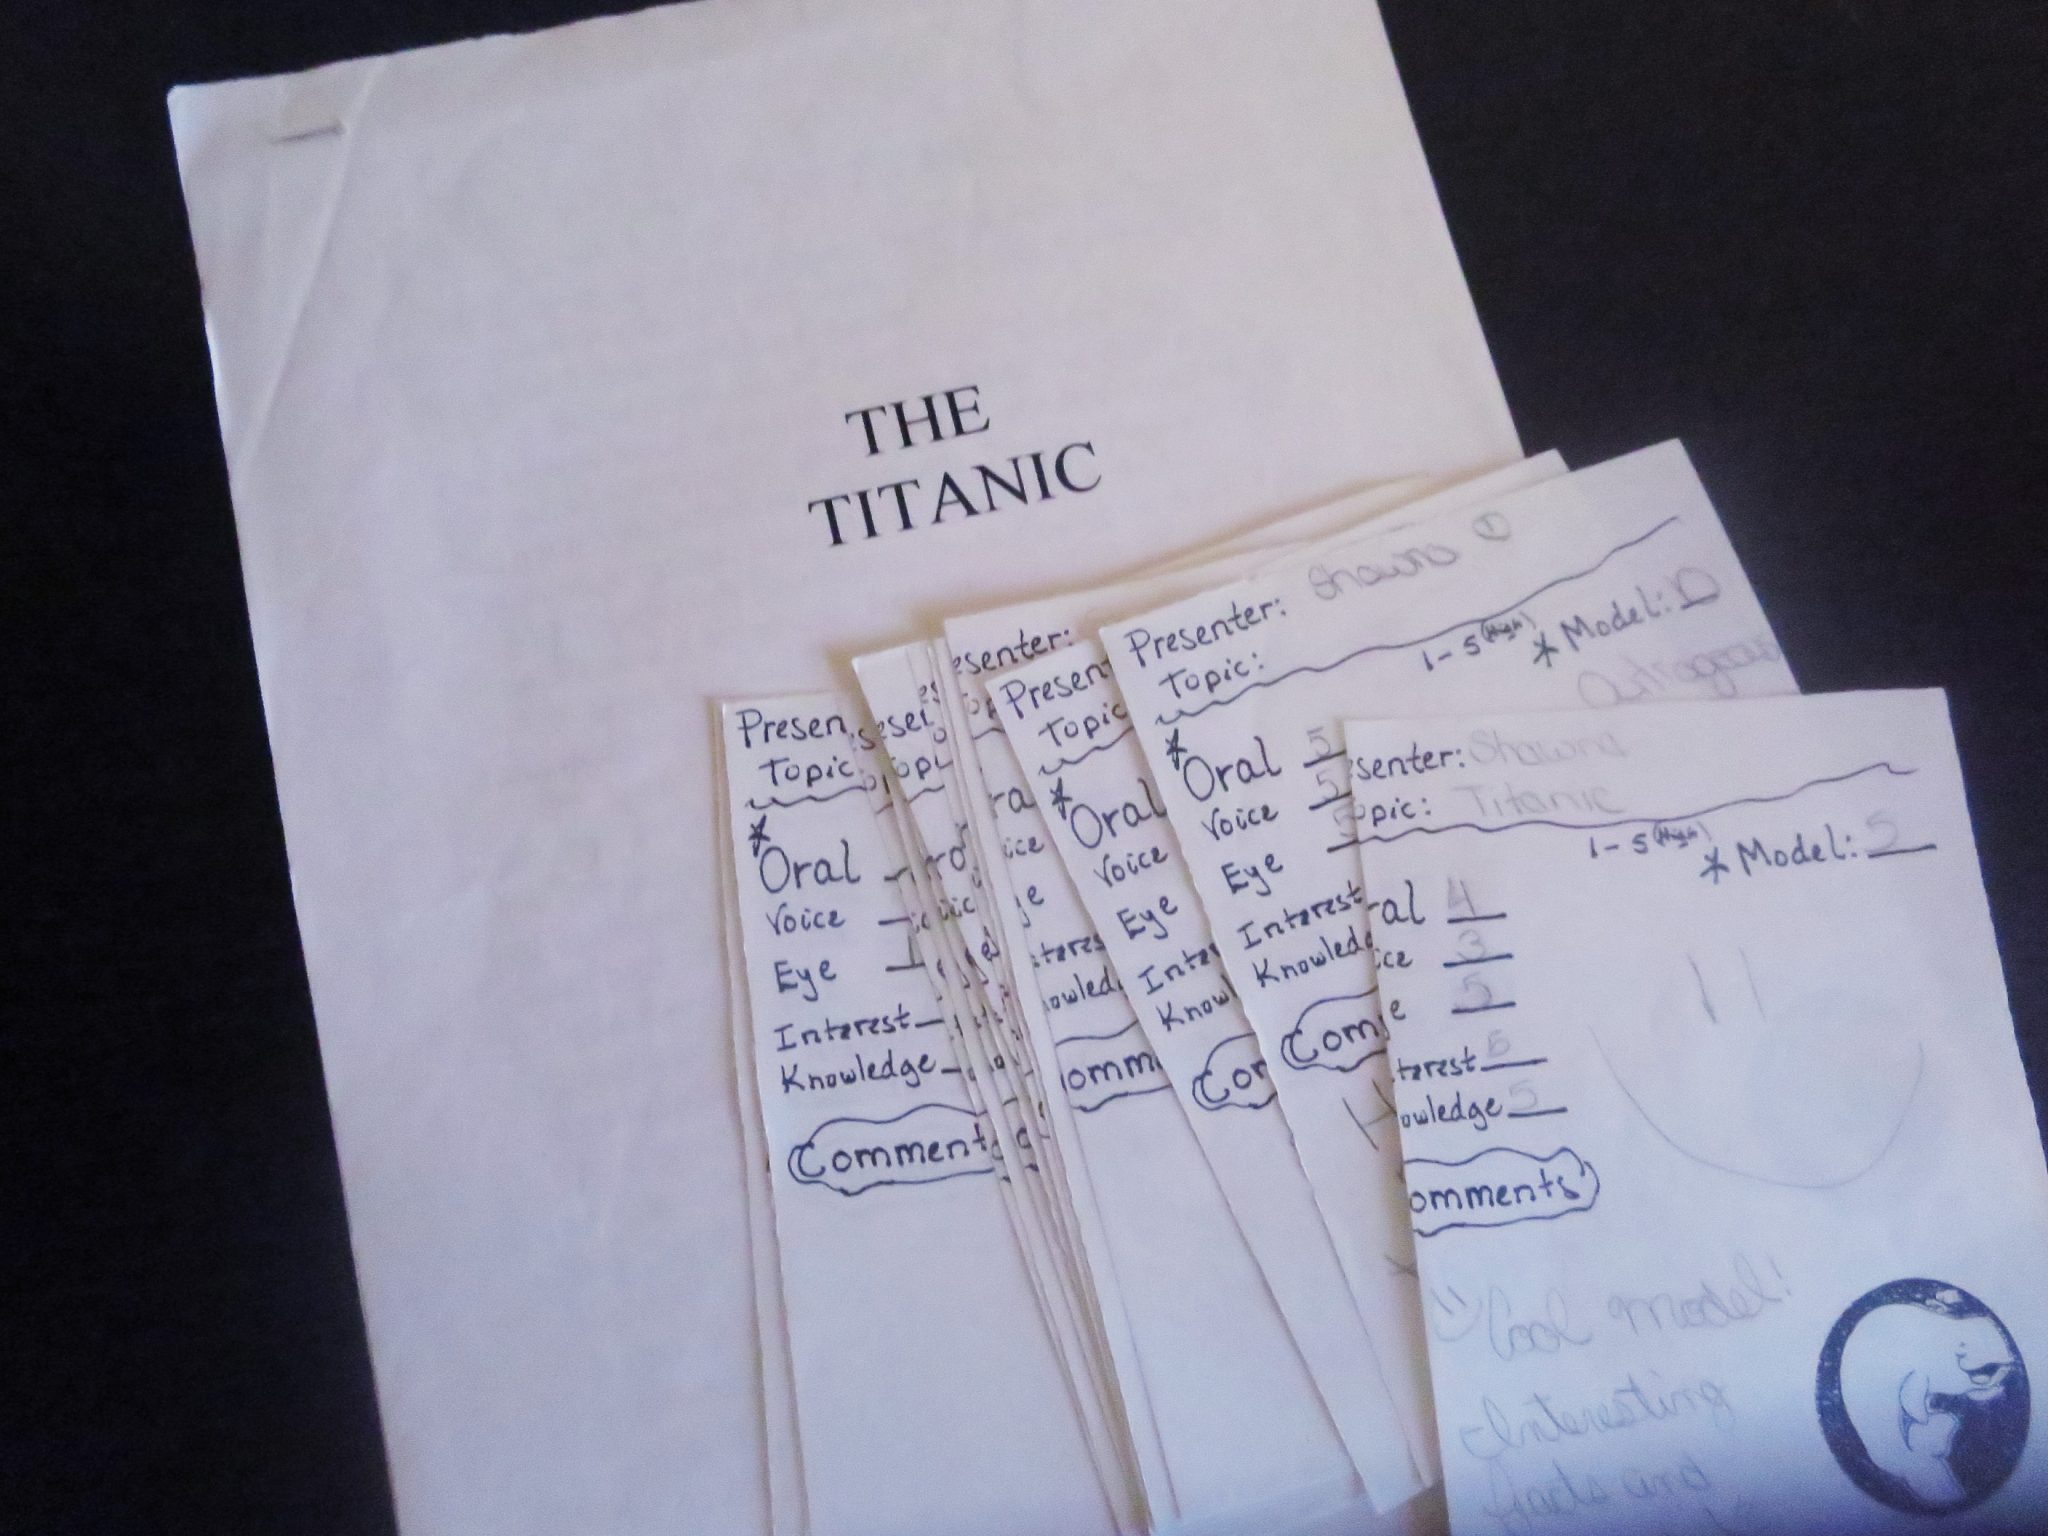 sinking of the titanic research paper This unit plan has students act as journalists and write a news story about the sinking of the titanic on april 15, 1912 teachers teachers home lessons and ideas  extra extra titanic sinks  students research and write a newspaper article about the sinking of the titanic.